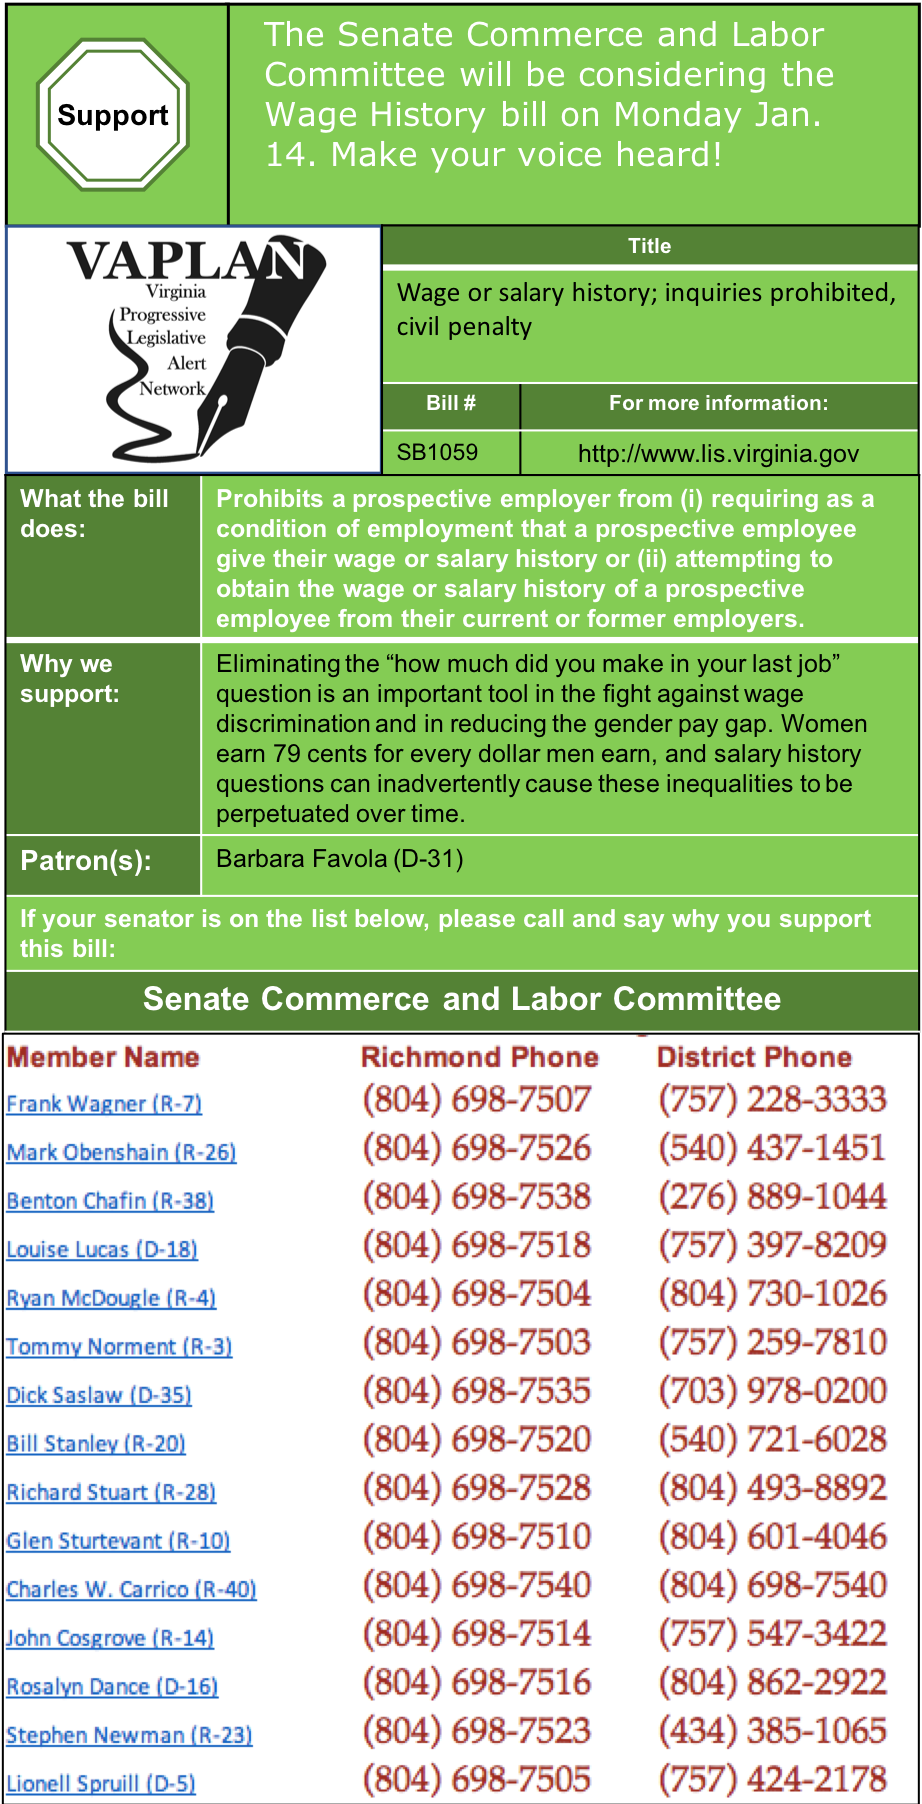 ALERT: Support Ending Wage History Question in Senate Commerce & Labor